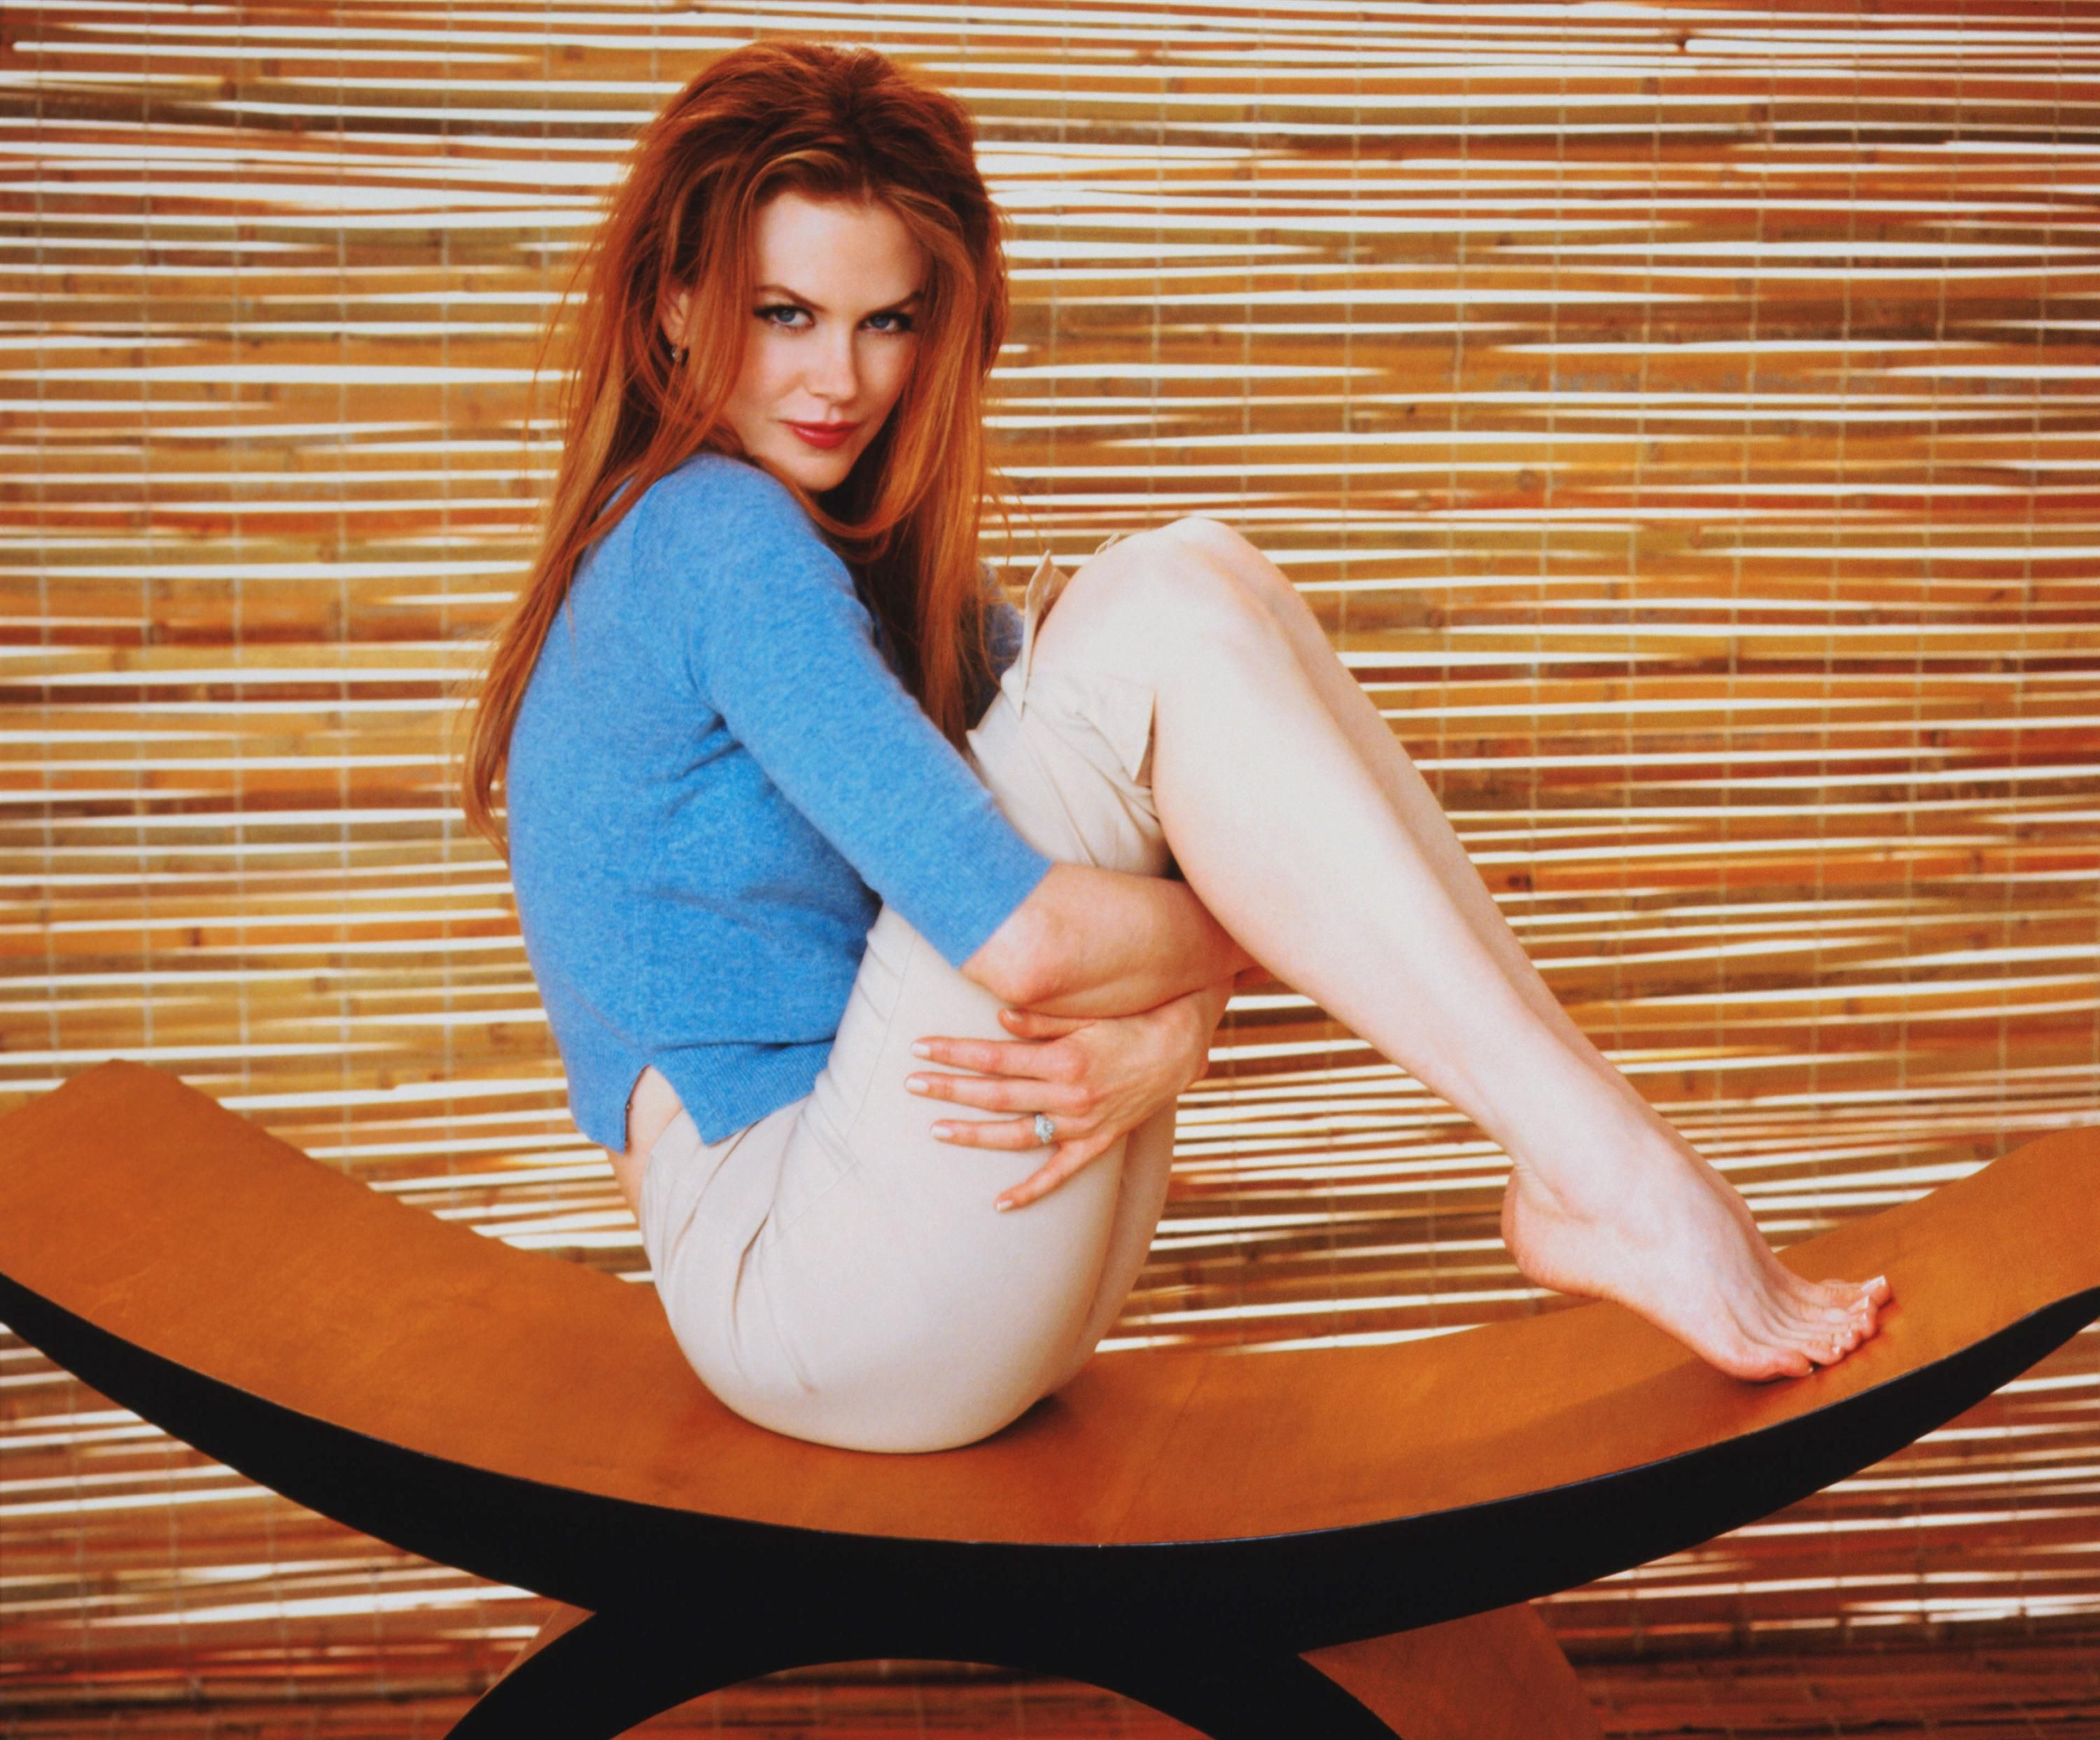 Feet Nicole Kidman naked (67 photo), Topless, Bikini, Feet, bra 2015